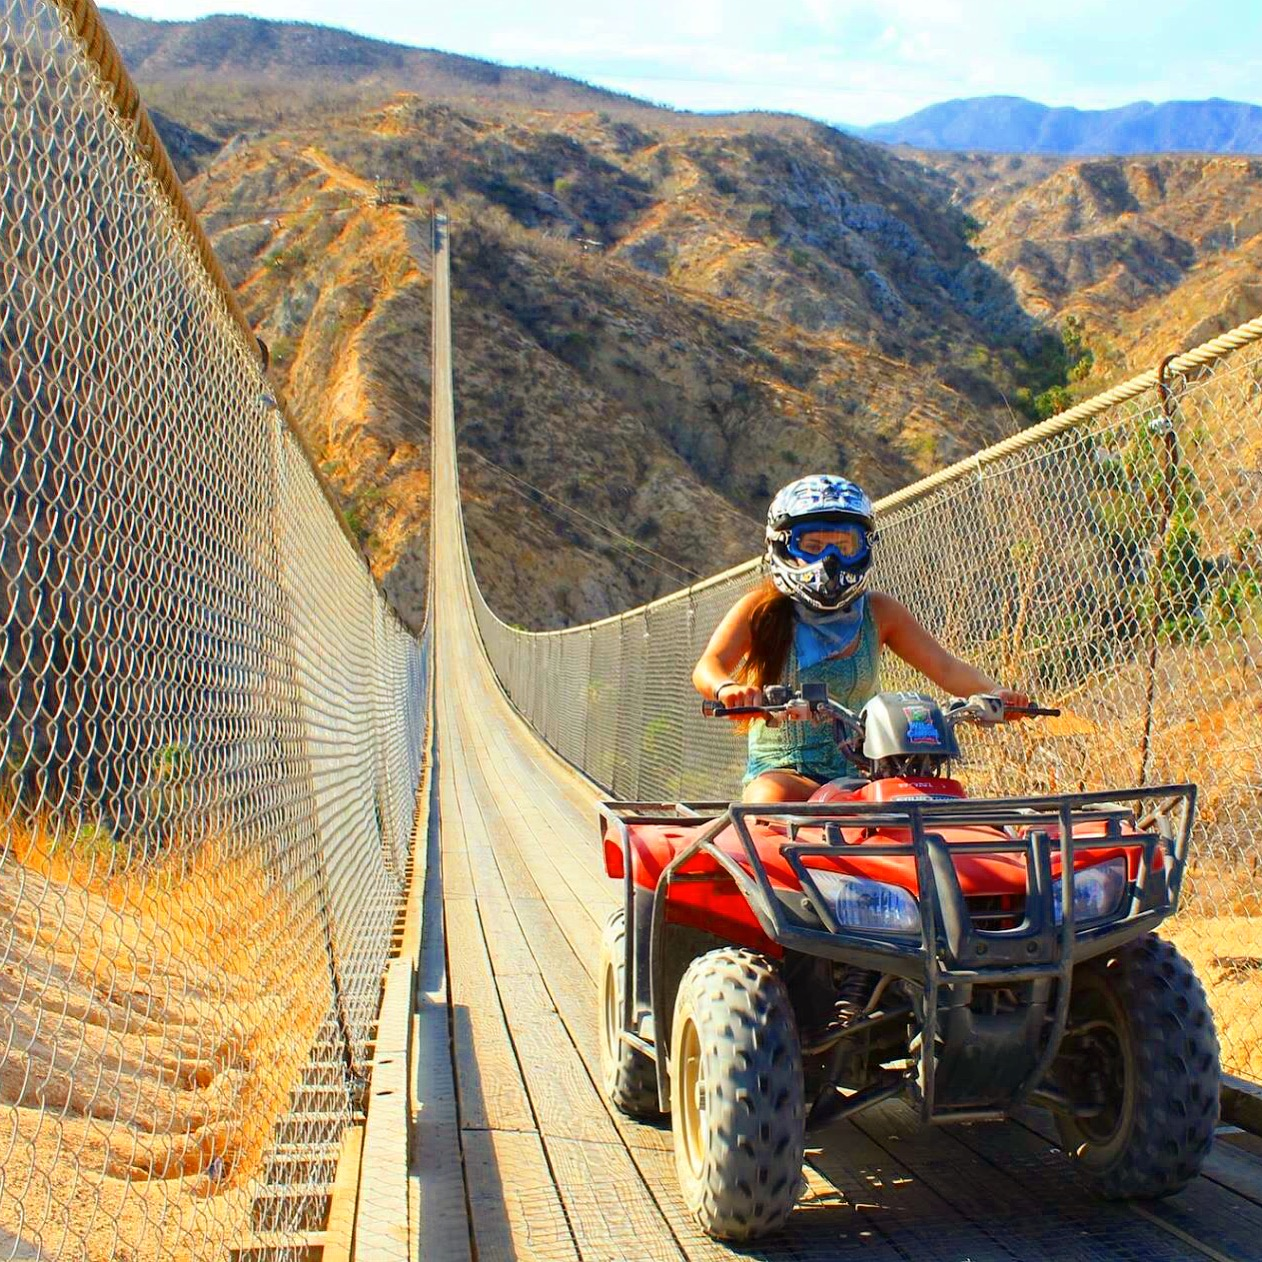 Jessica, ATV riding in Cabo along the longest suspension bridge.